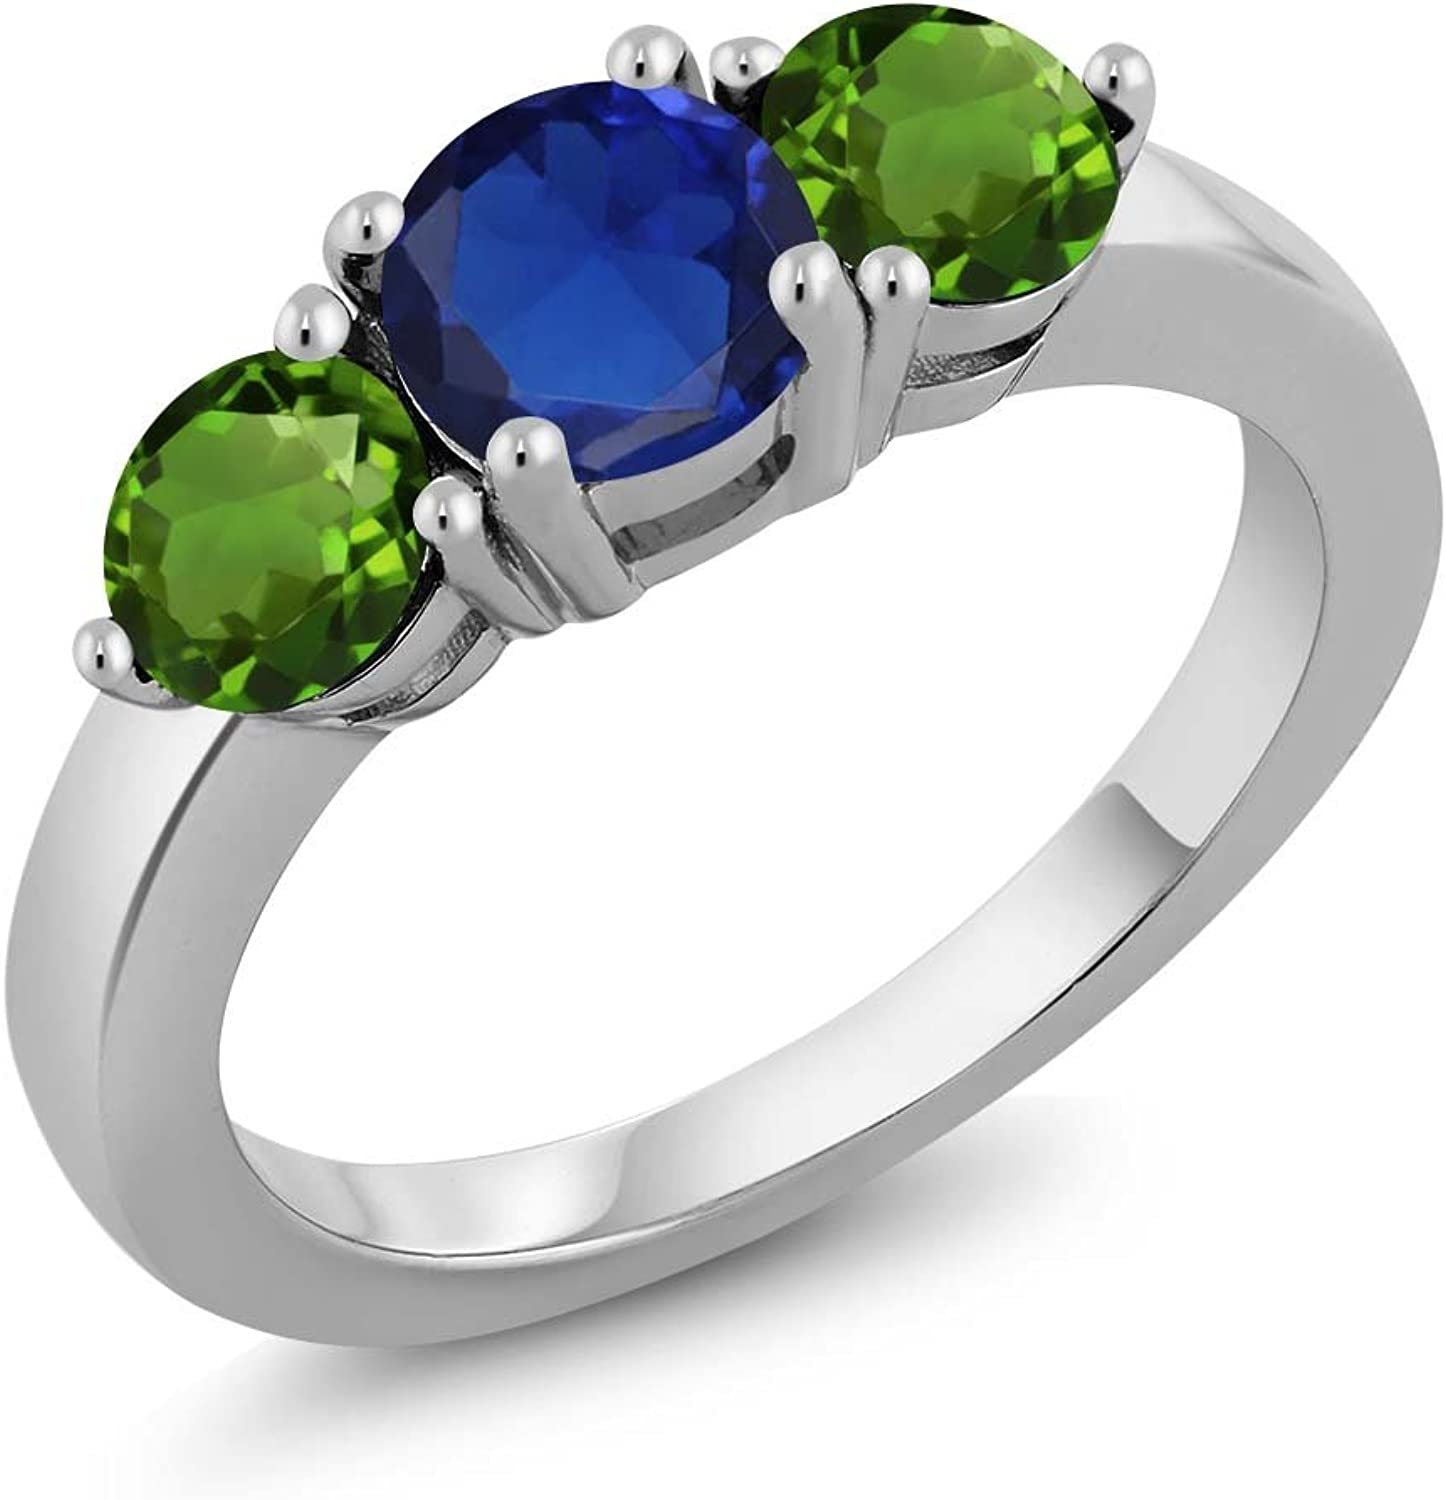 2.00 Ct Round bluee Simulated Sapphire Green Chrome Diopside 925 Silver Ring